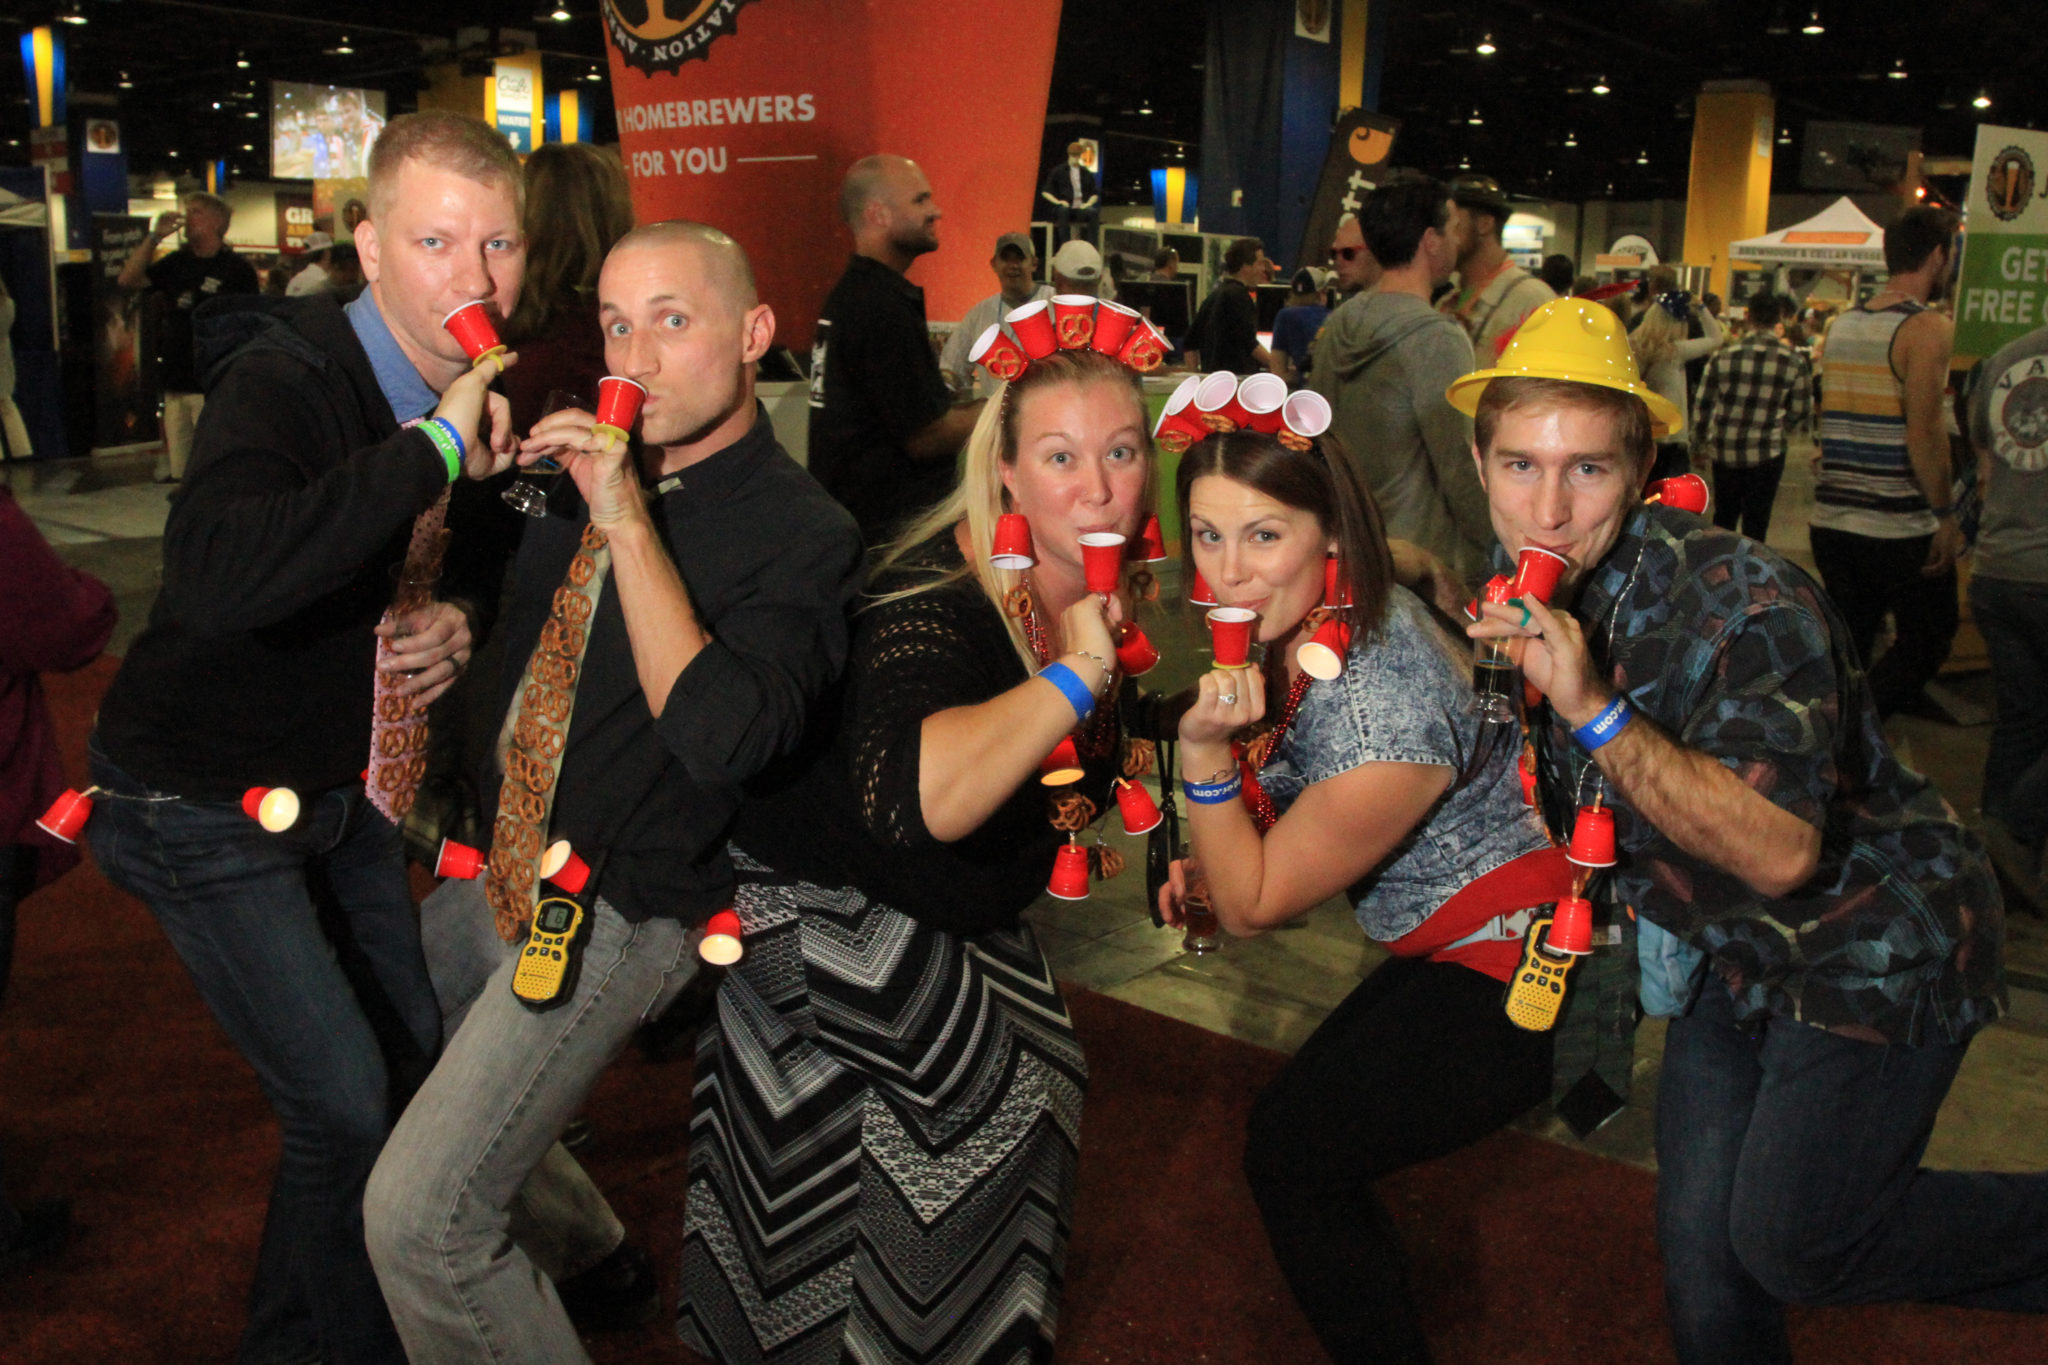 Friends from Denver, Colo., and Mesa, Ariz., at Great American Beer Festival, Oct. 8, 2016. (Stephanie Snyder/Denverite)